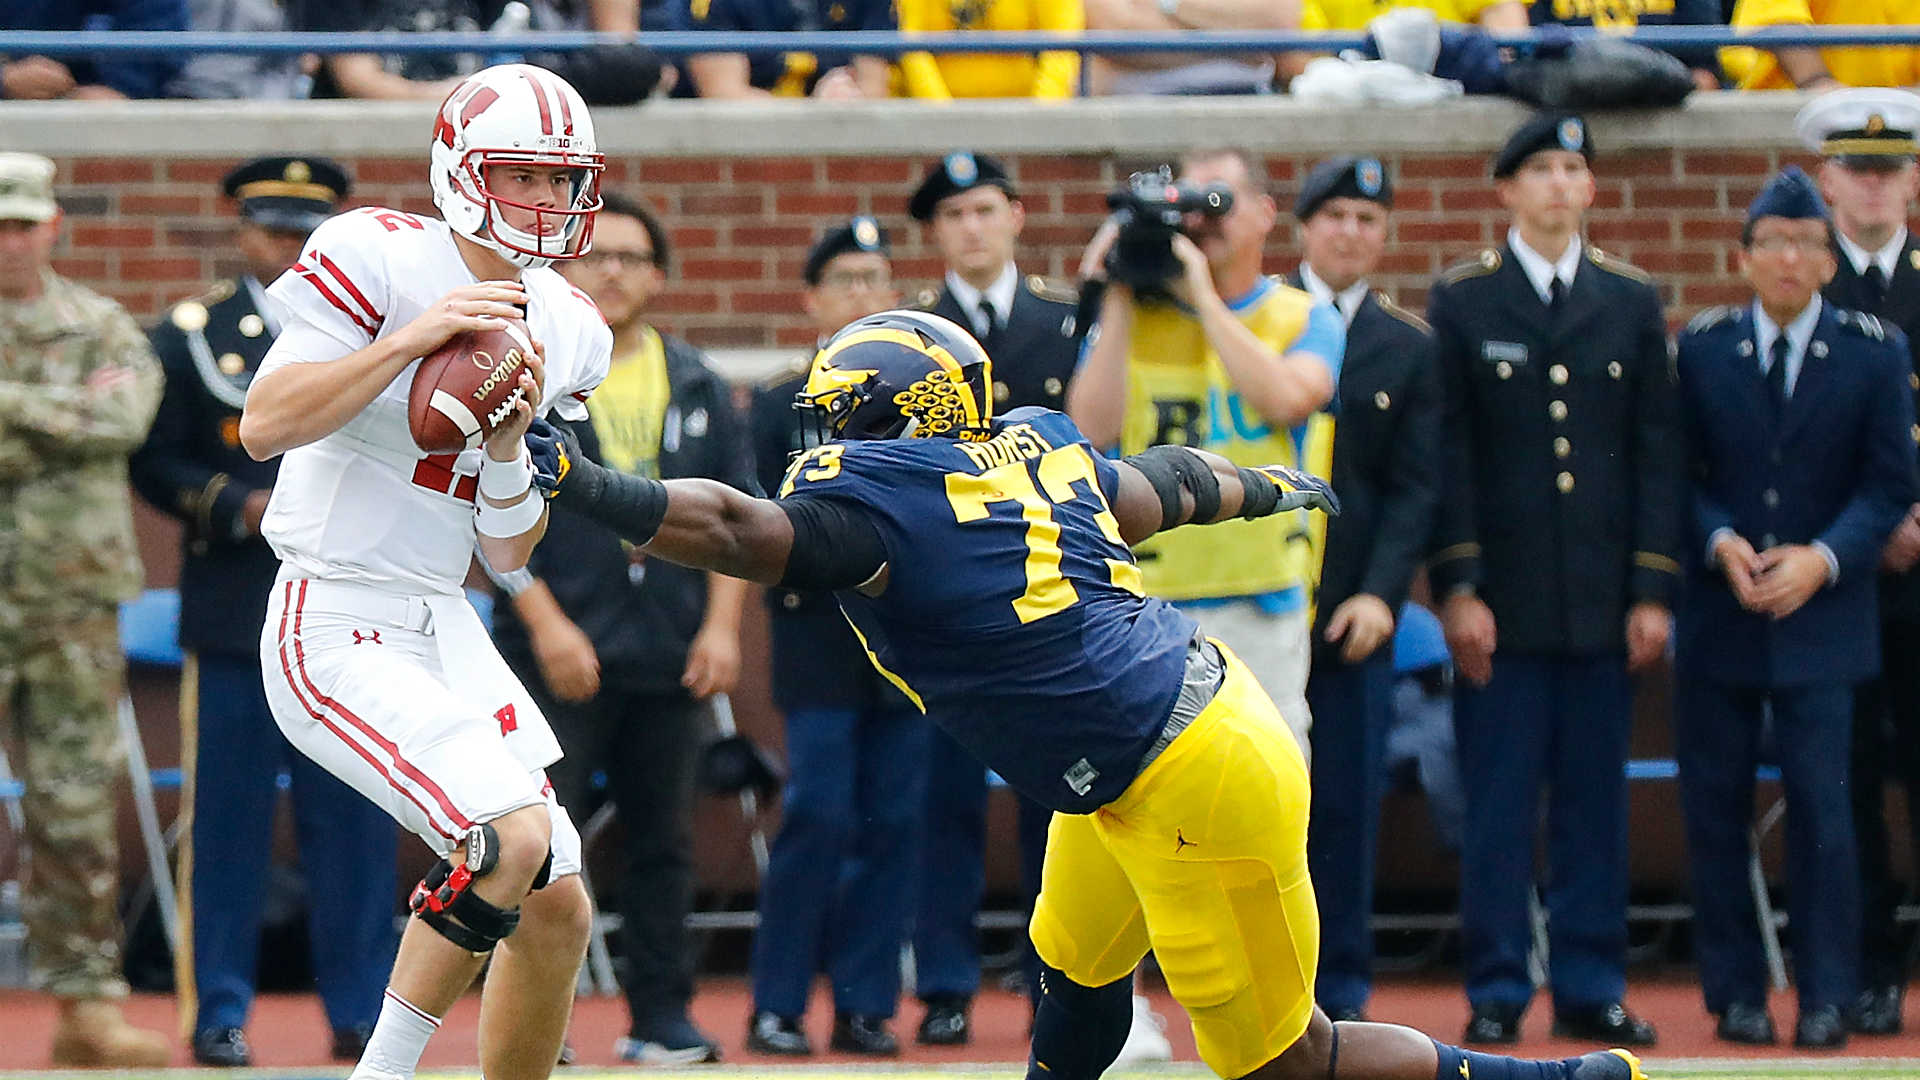 How to Watch Michigan vs. Wisconsin